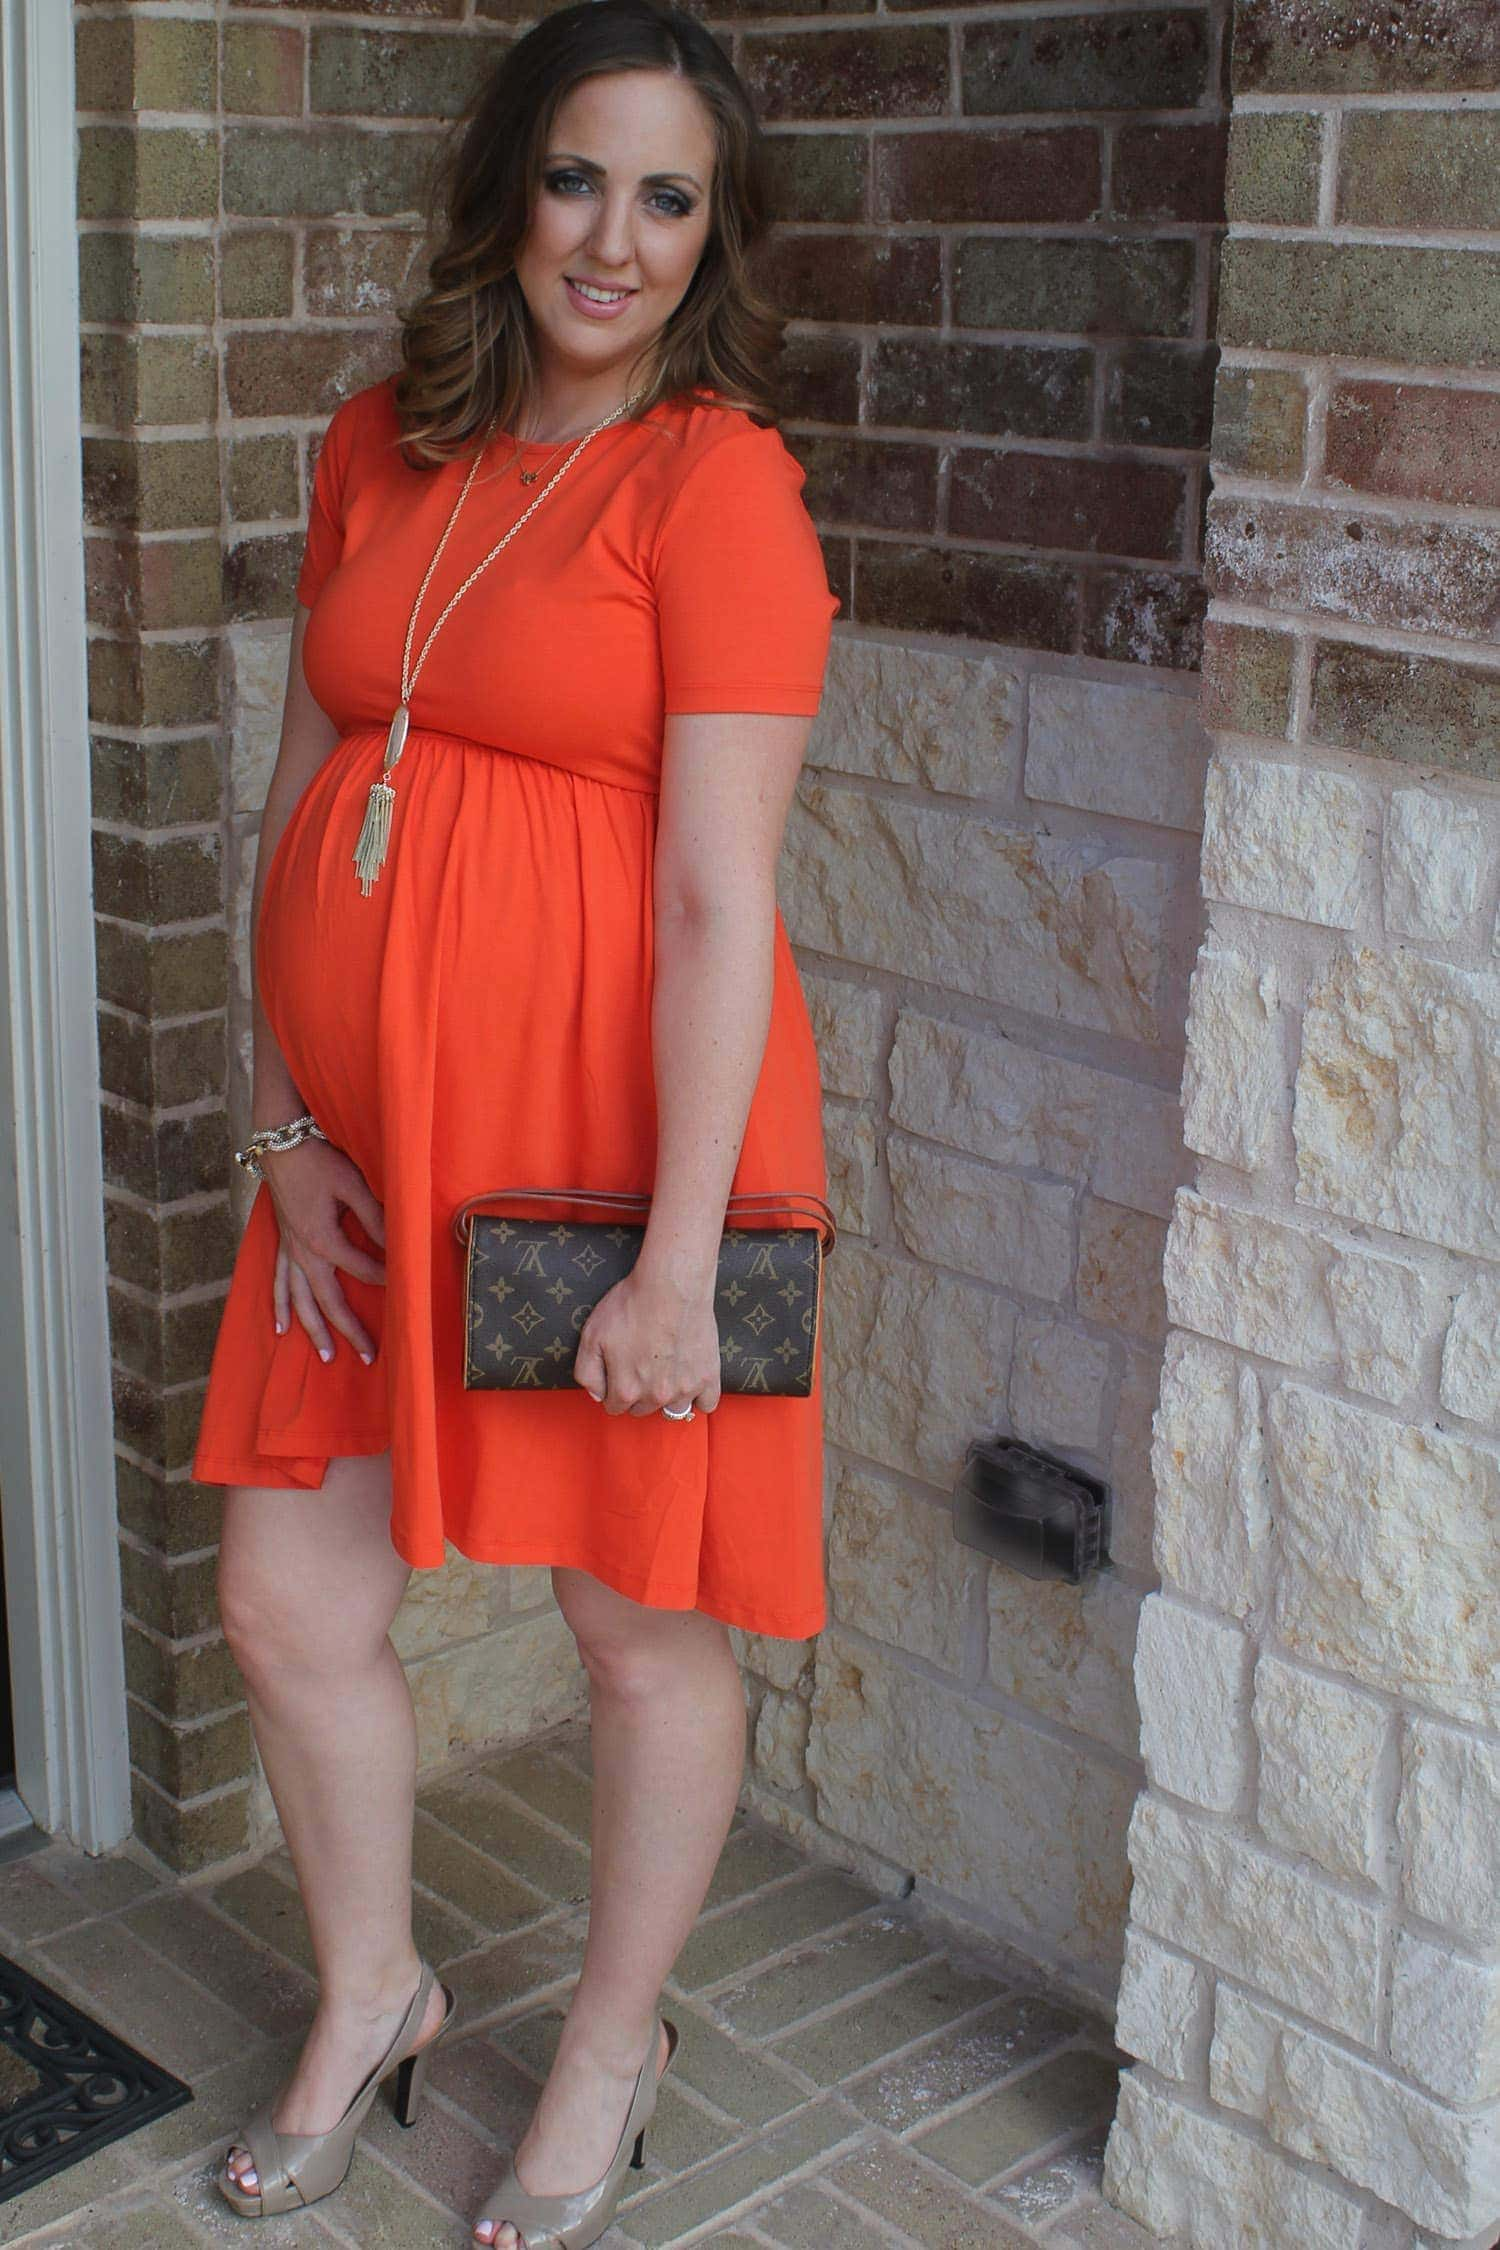 Third trimester maternity style dressed in orange dress asos co short necklace groopdealz long necklace kendra scott bracelet ebay i love a good j crew knockoff clutch louis vuitton i ombrellifo Gallery